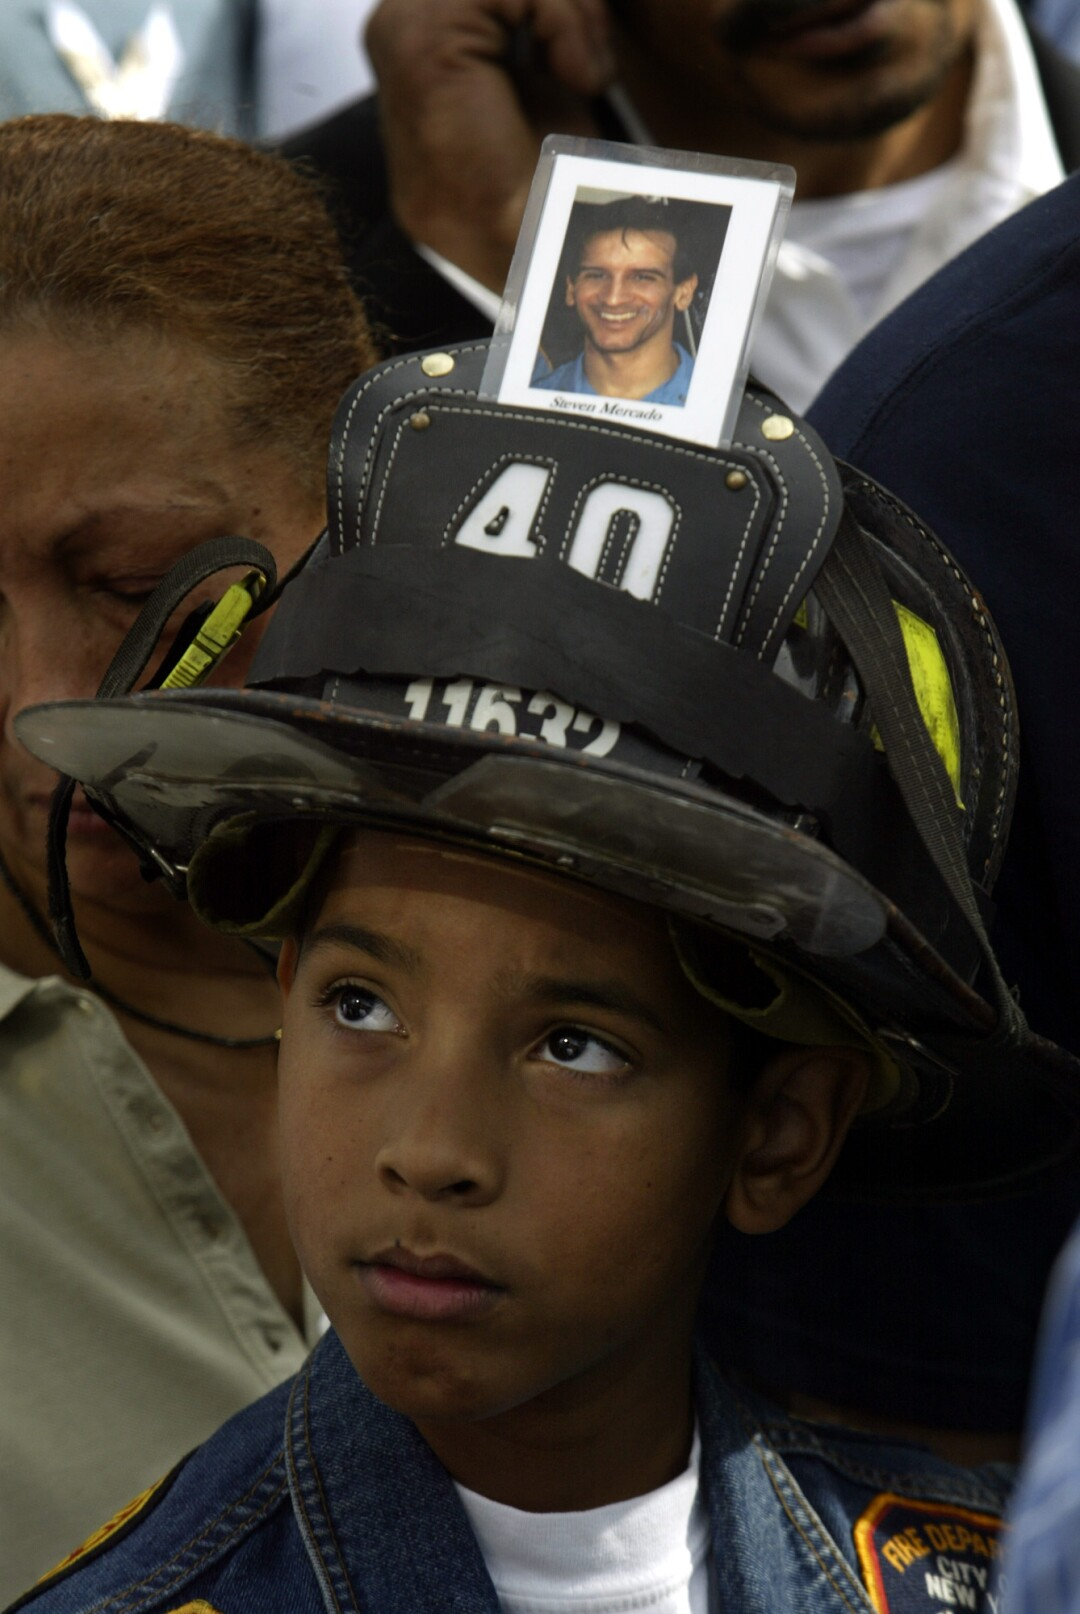 A boy wears a firefighter's helmet with a photo attached